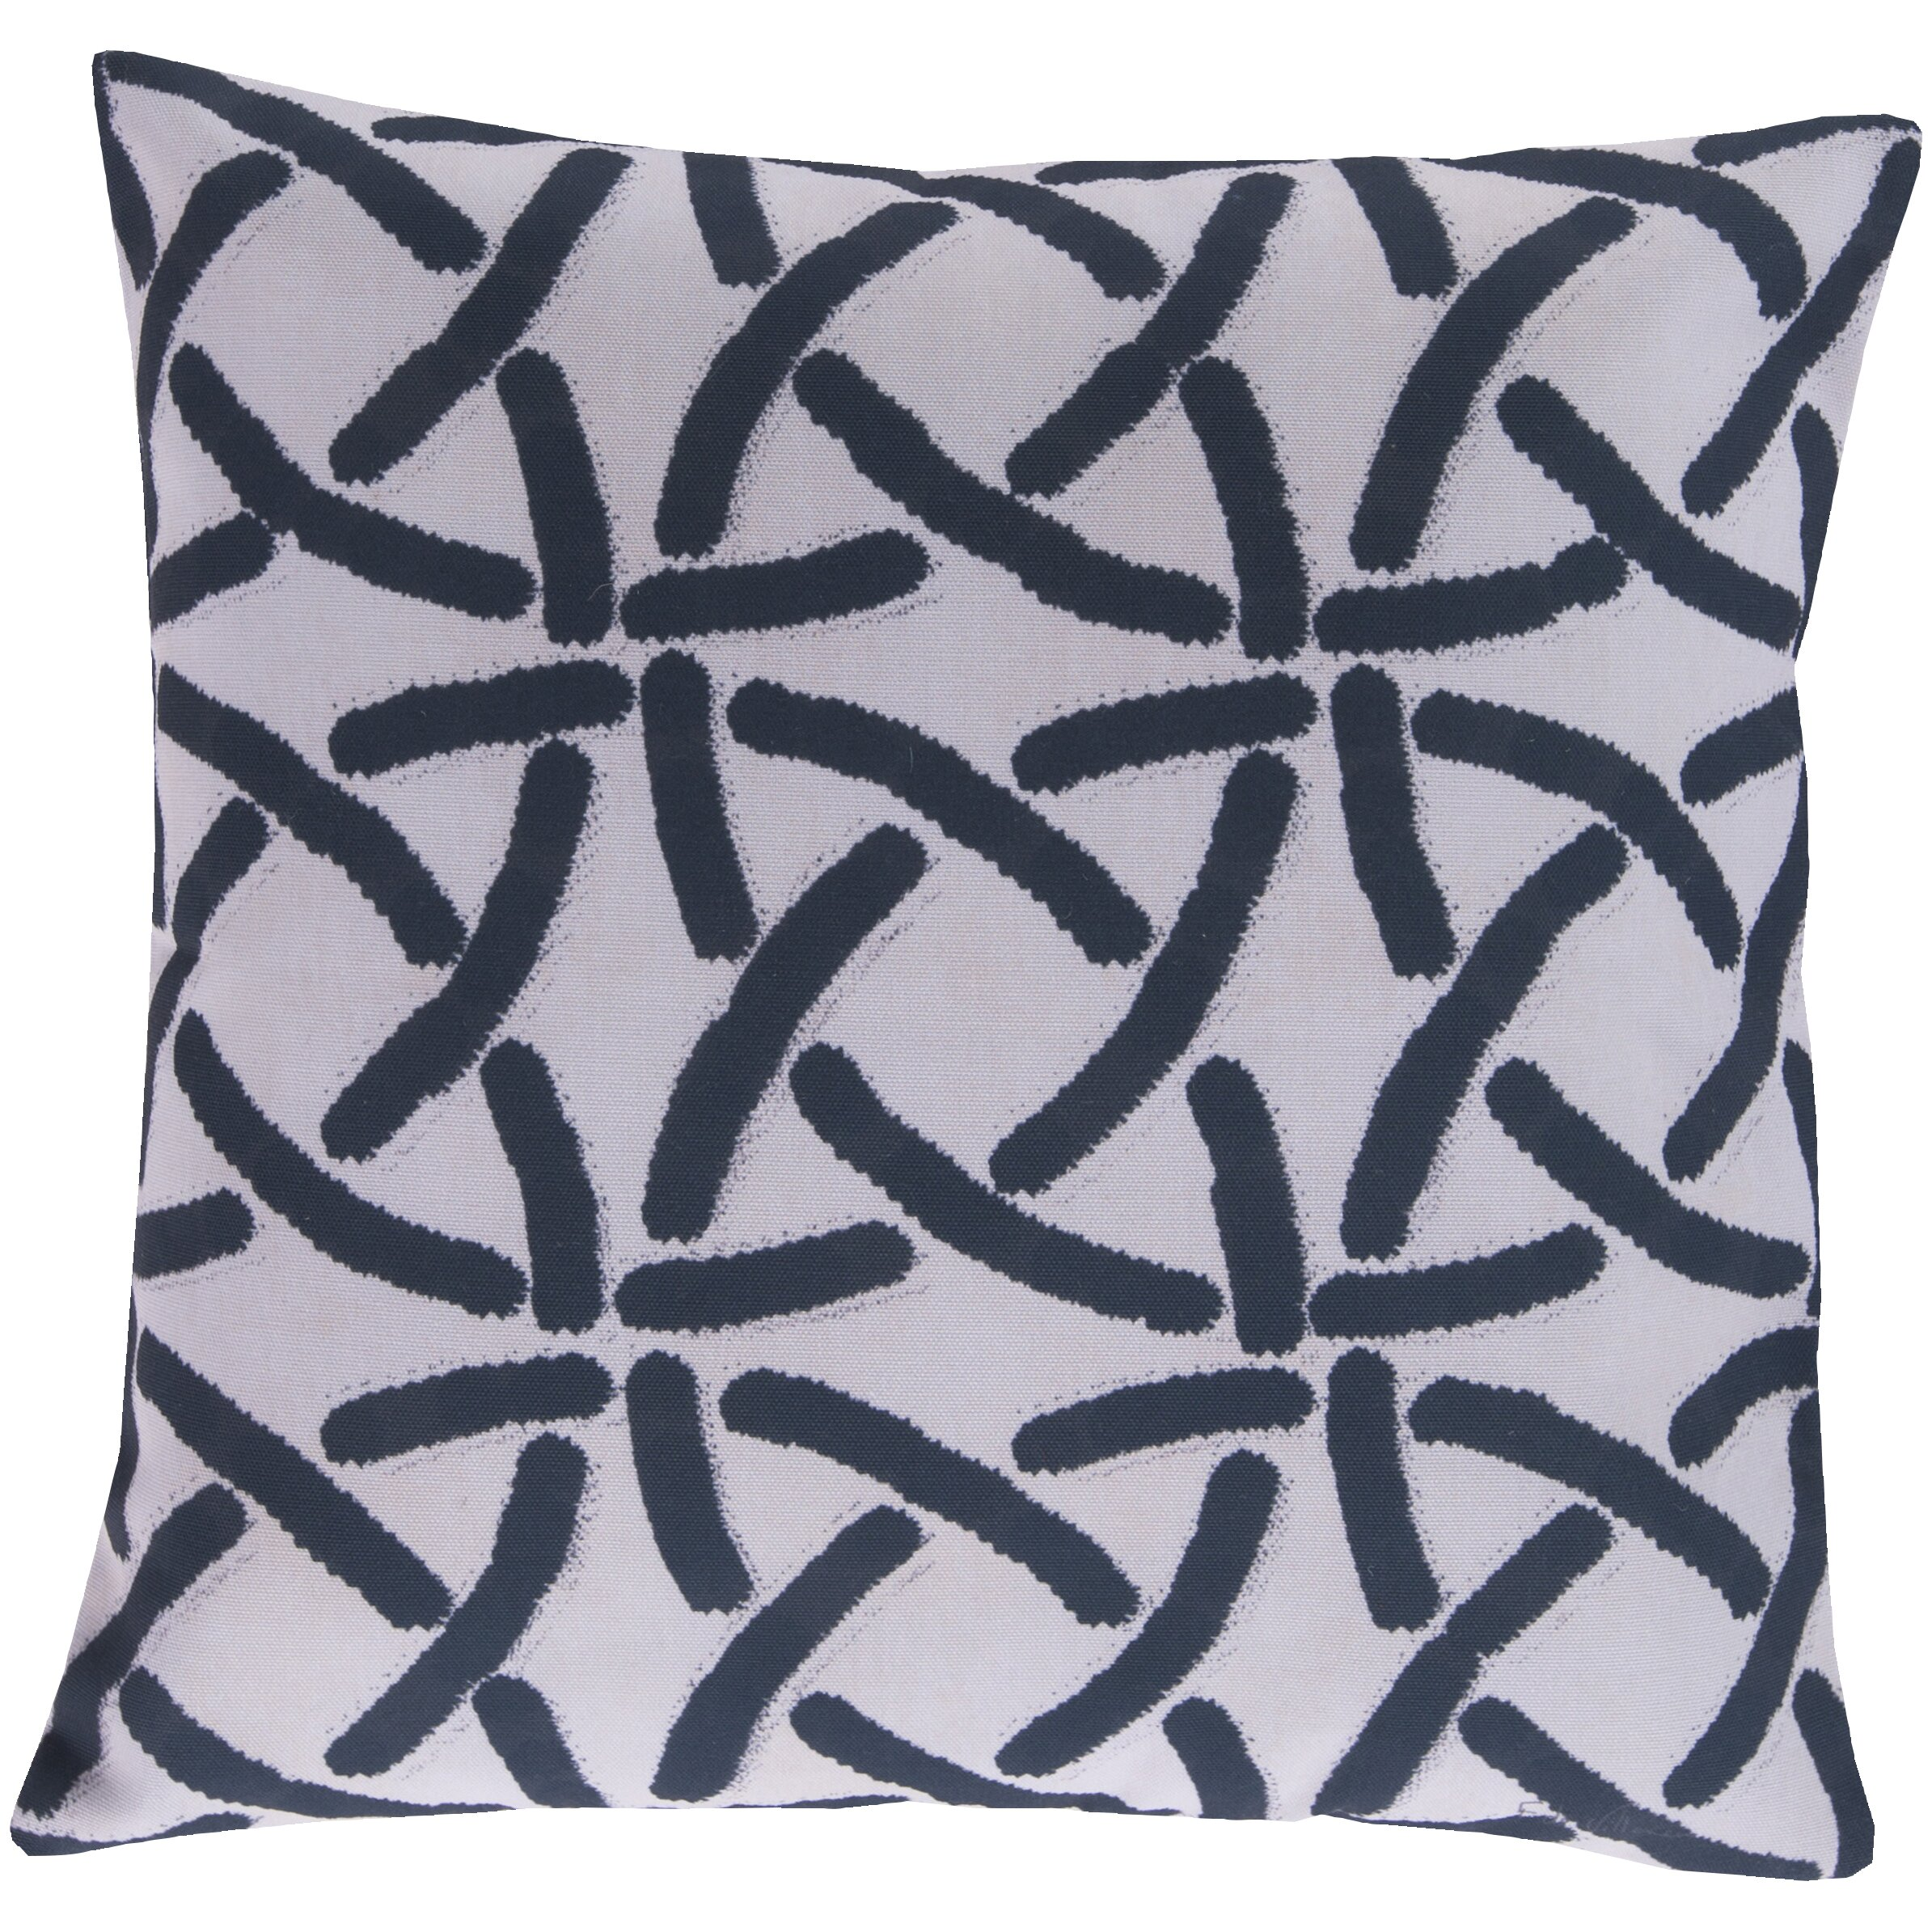 Surya Overlapping Circles Throw Pillow Wayfair